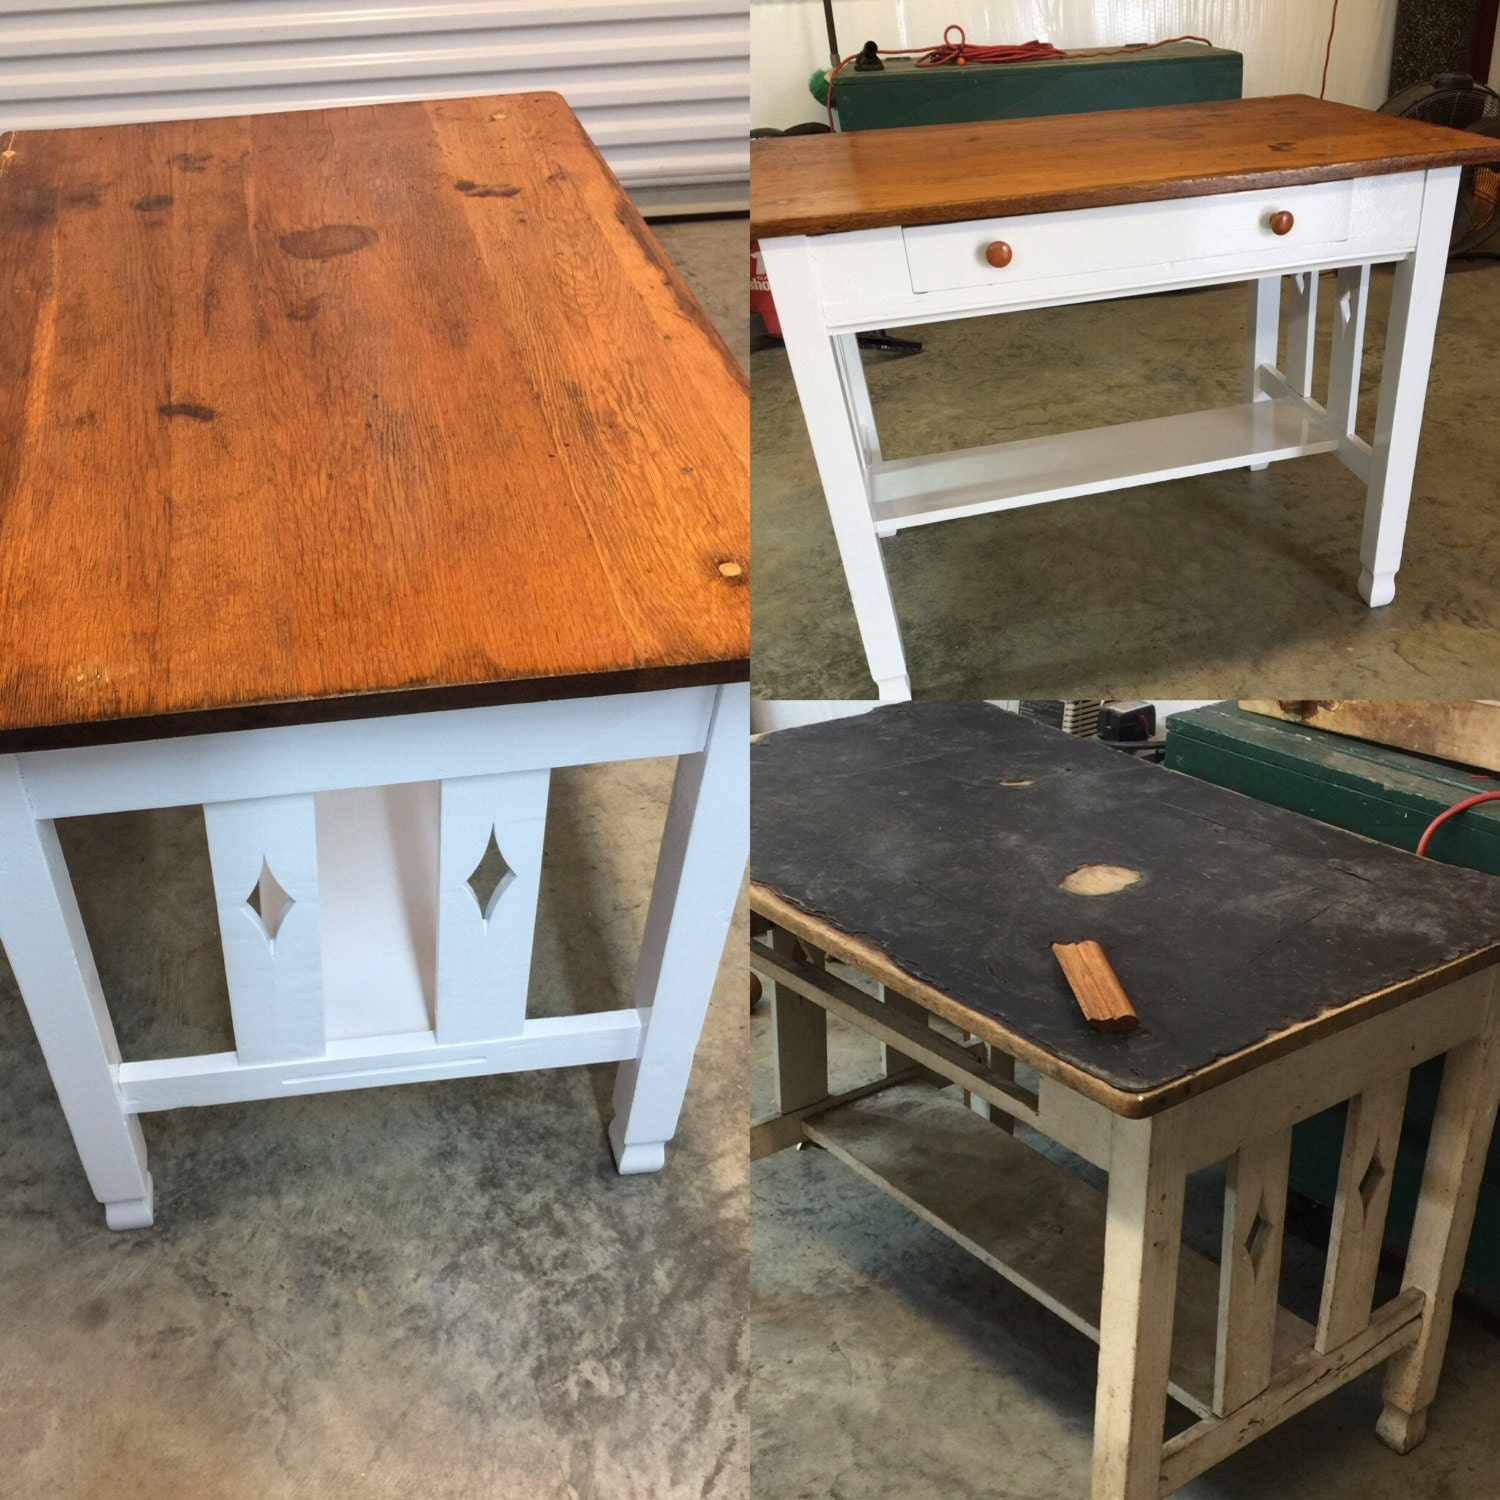 EXAMPLE Refinished Antique Kitchen Work Table